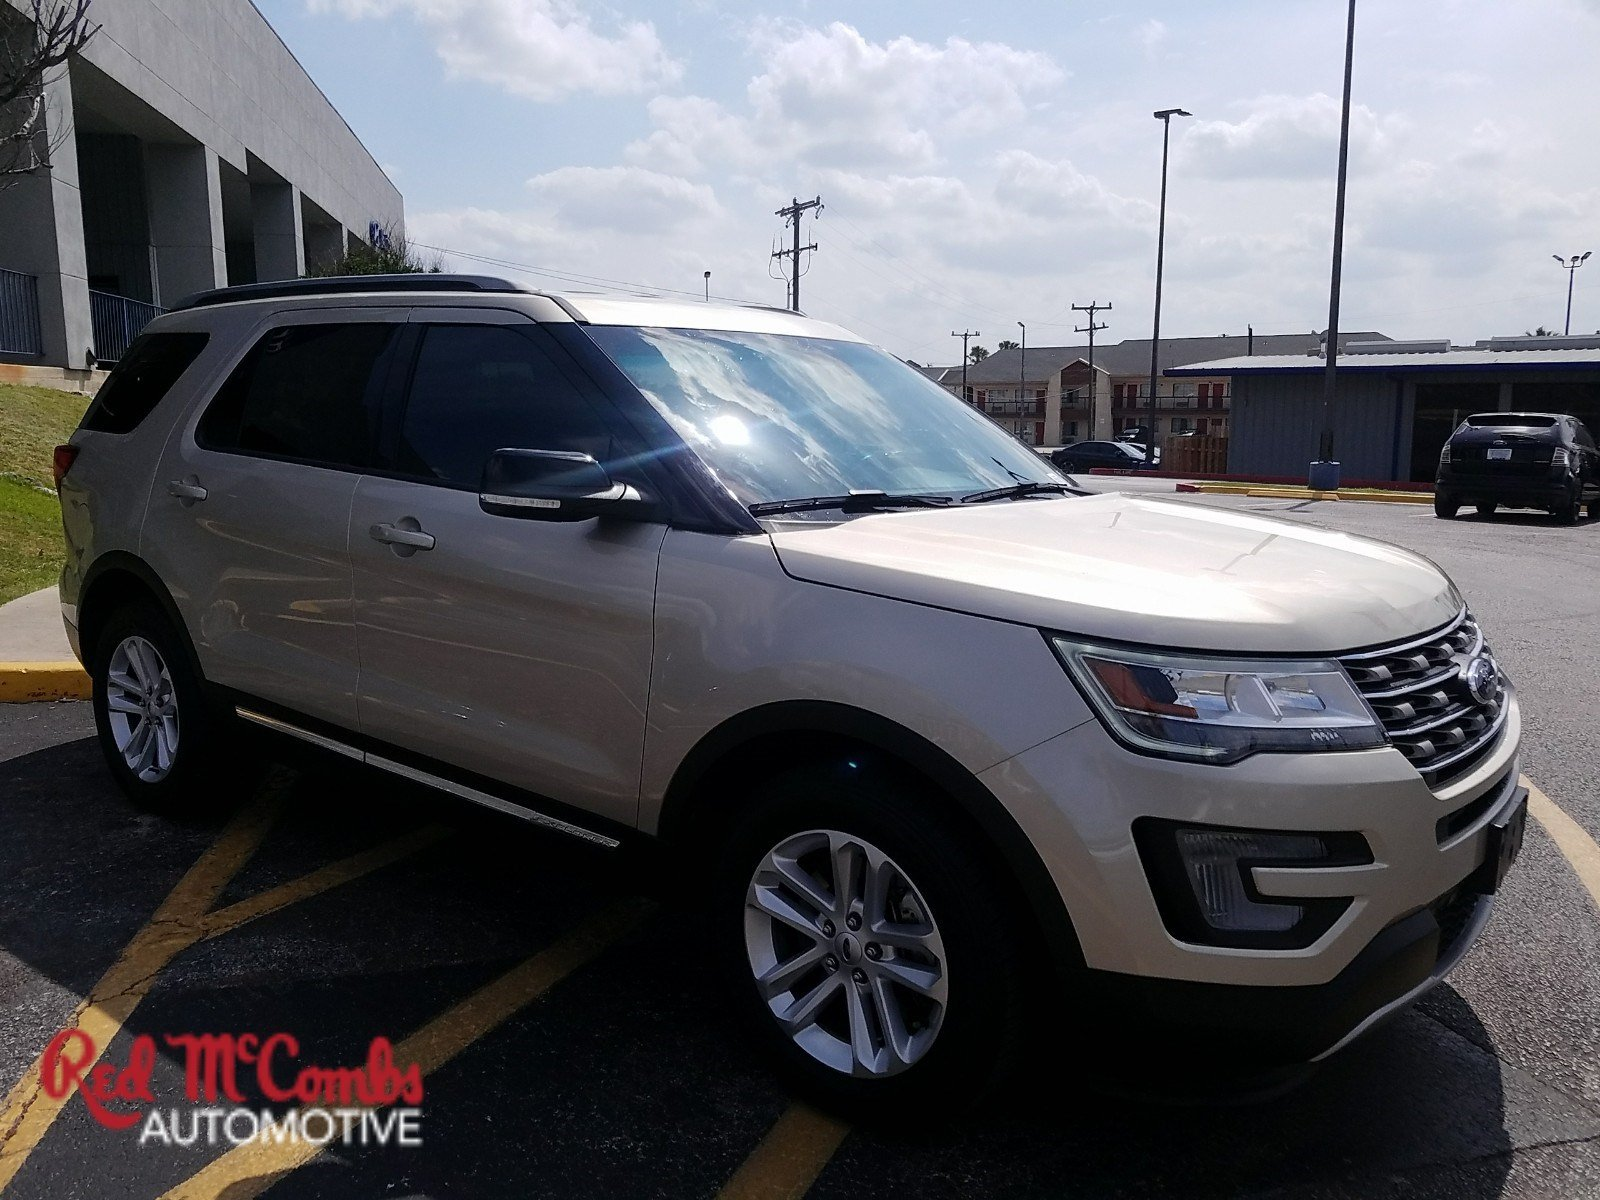 Pre Owned 2017 Ford Explorer XLT Sport Utility in San Antonio